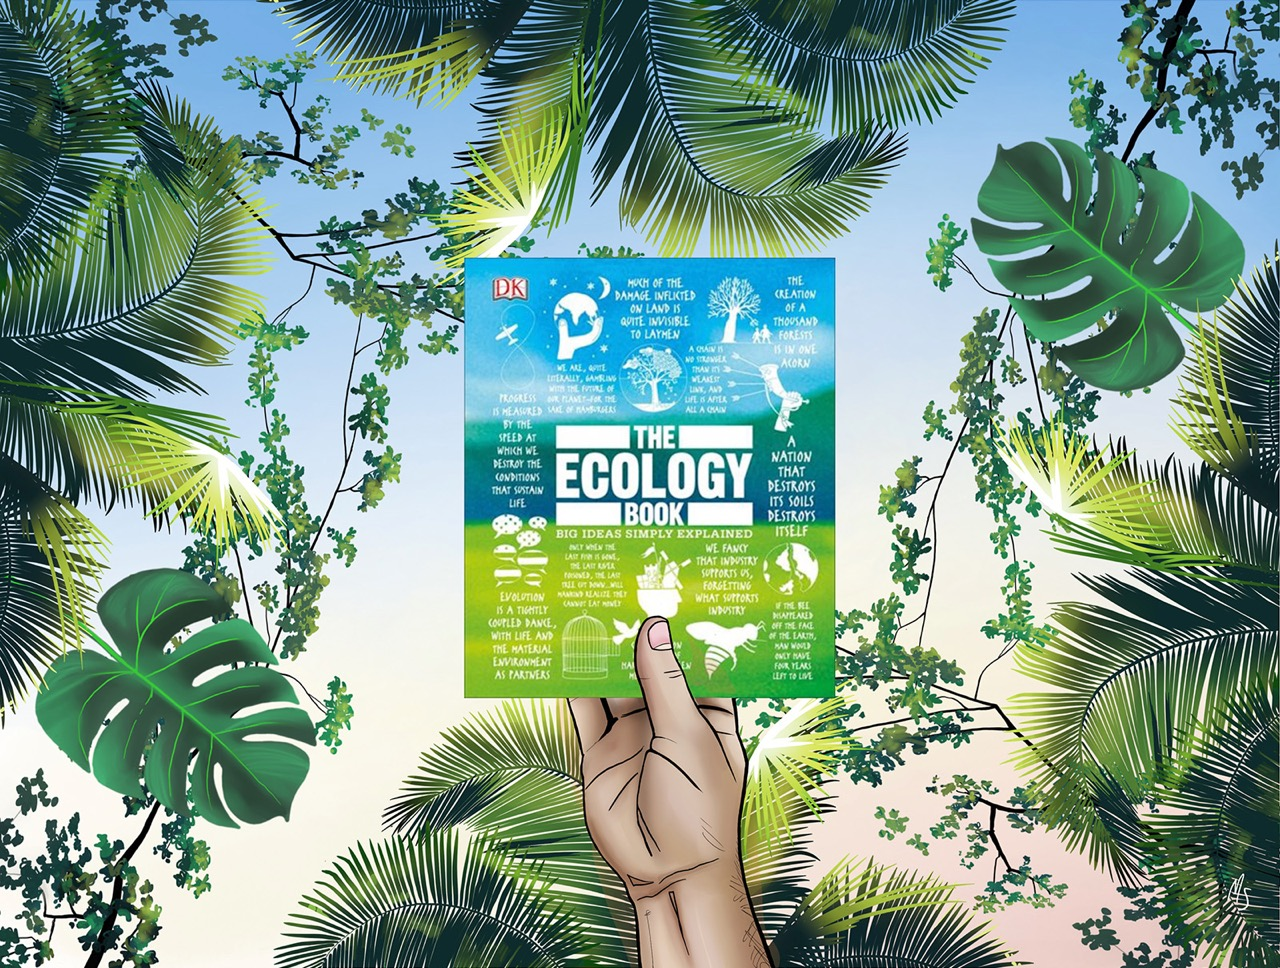 The Ecology Book by DK Publishing.